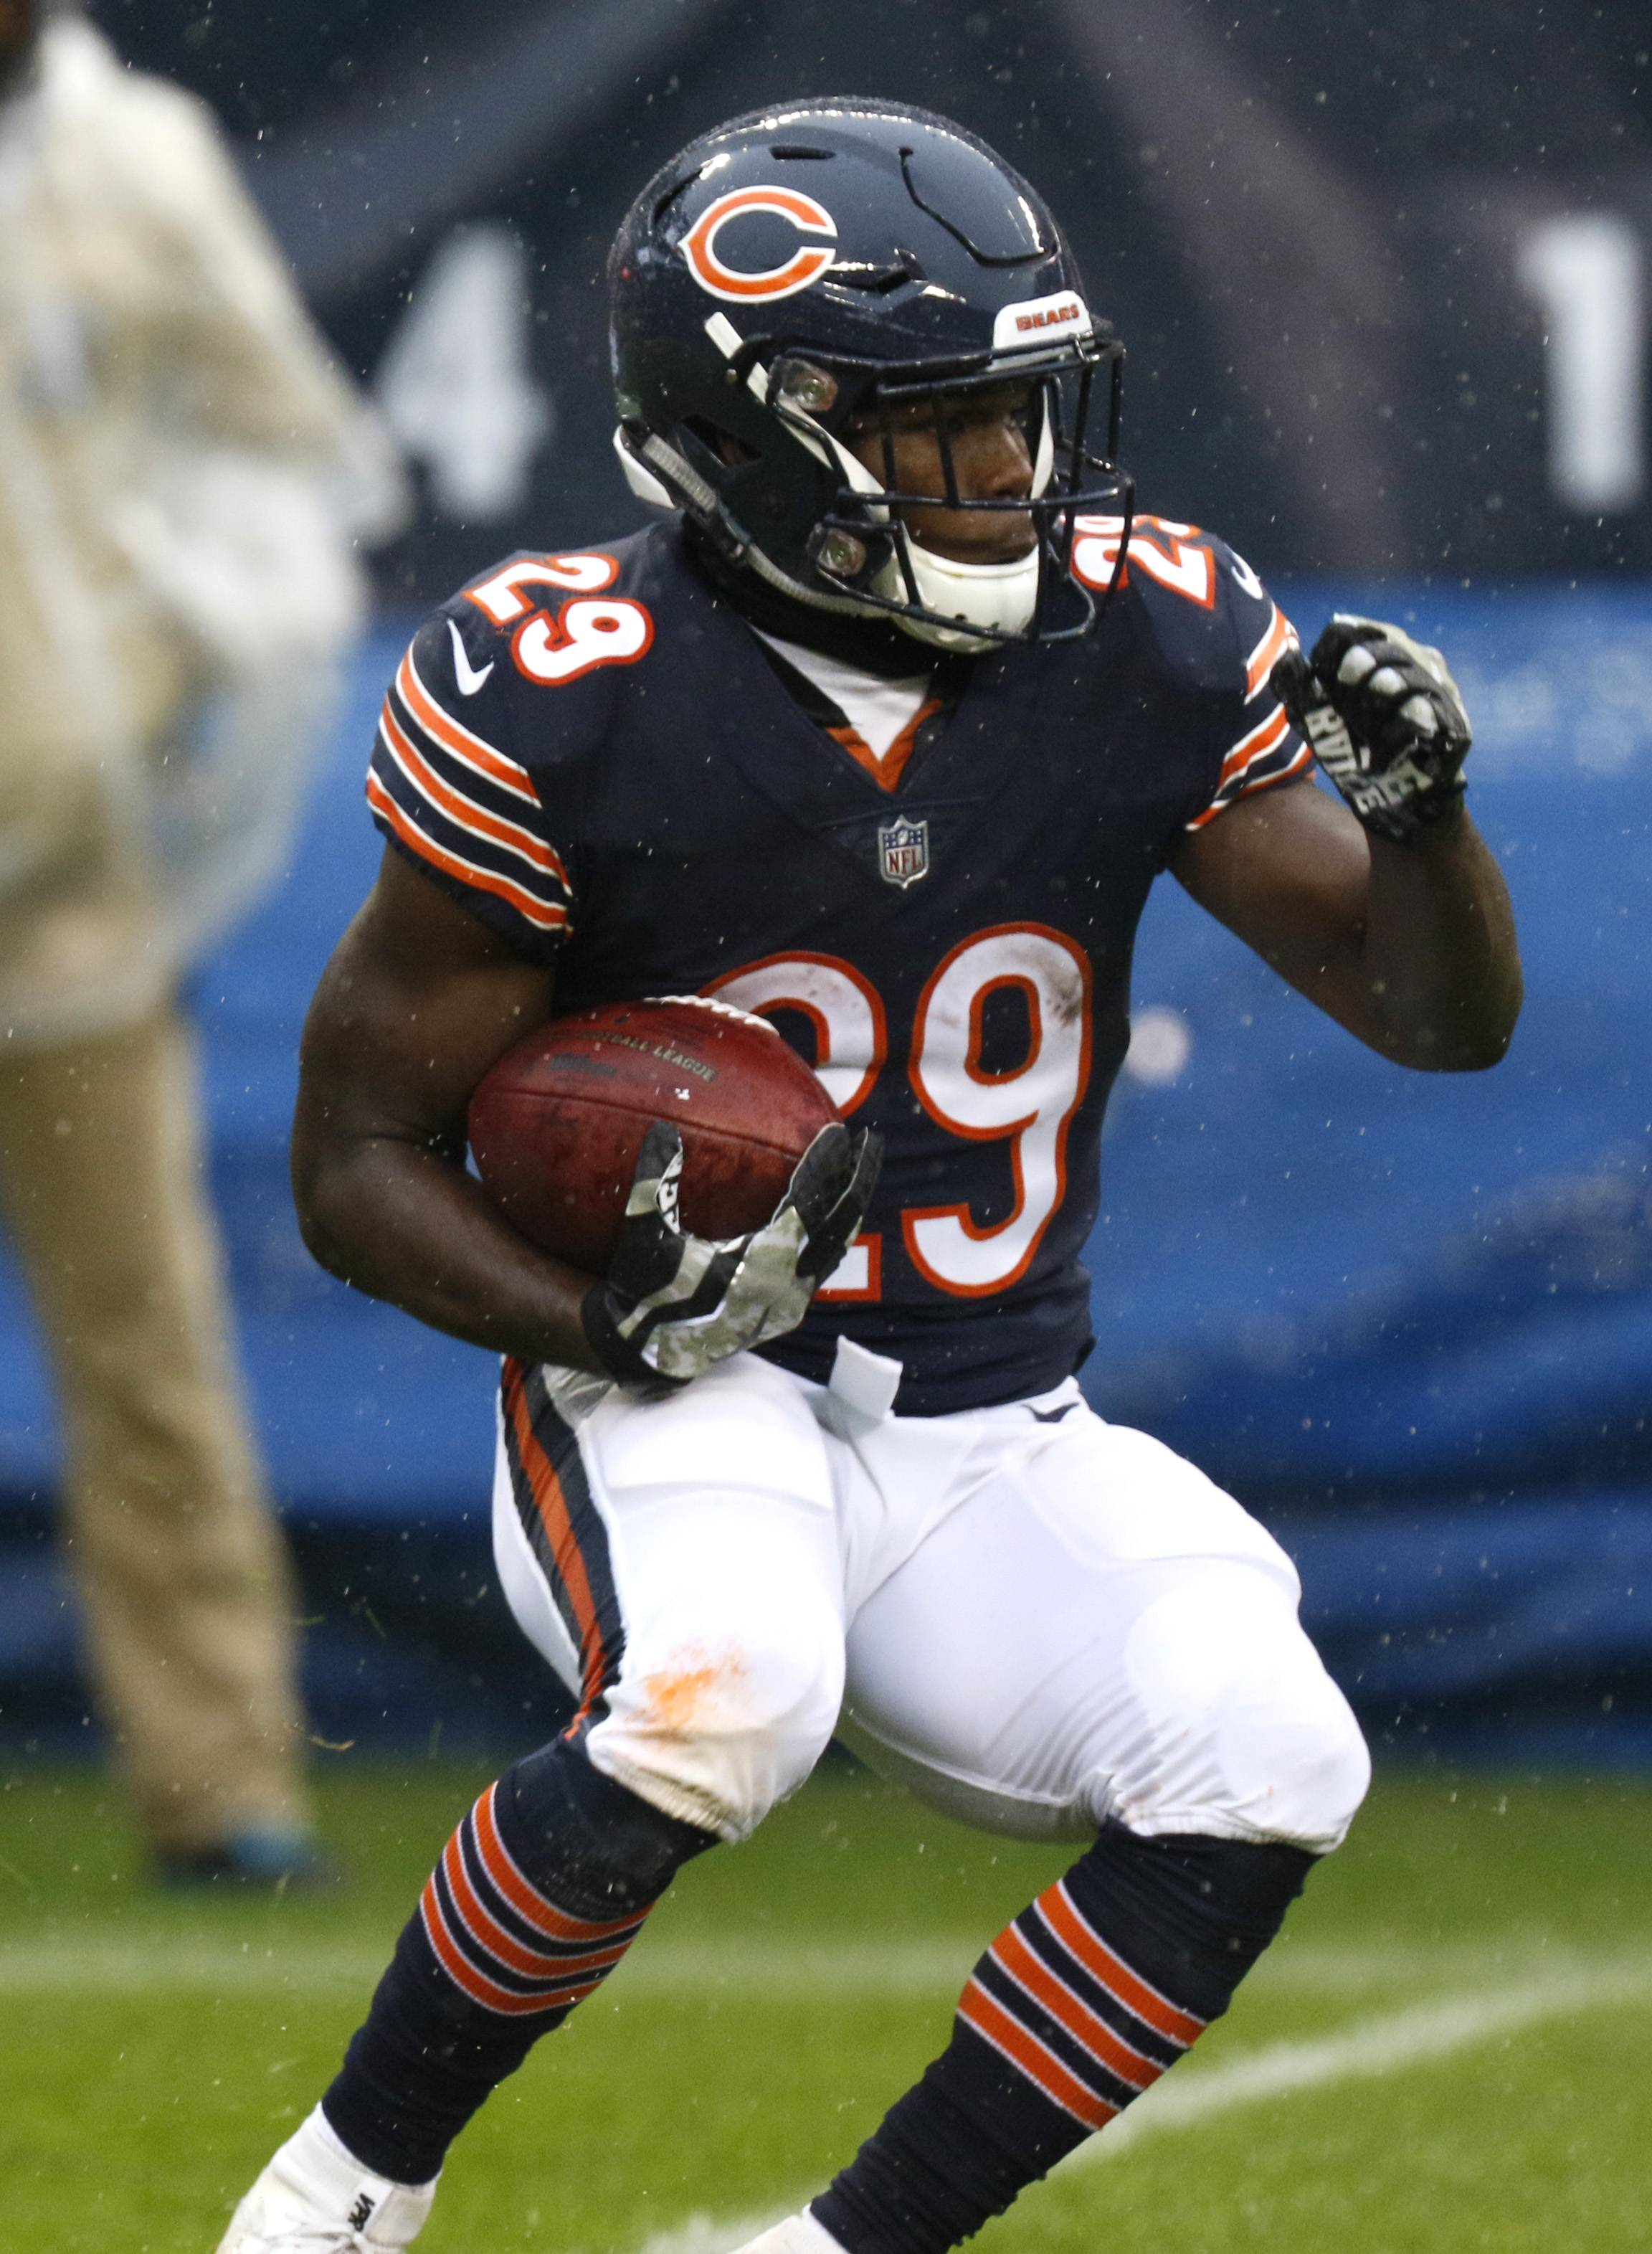 Daniel White/dwhite@dailyherald.comChicago Bears Tarik Cohen (29) runs for first half yardage against the Green Bay Packers, November 12, 2017, at Soldier Field.